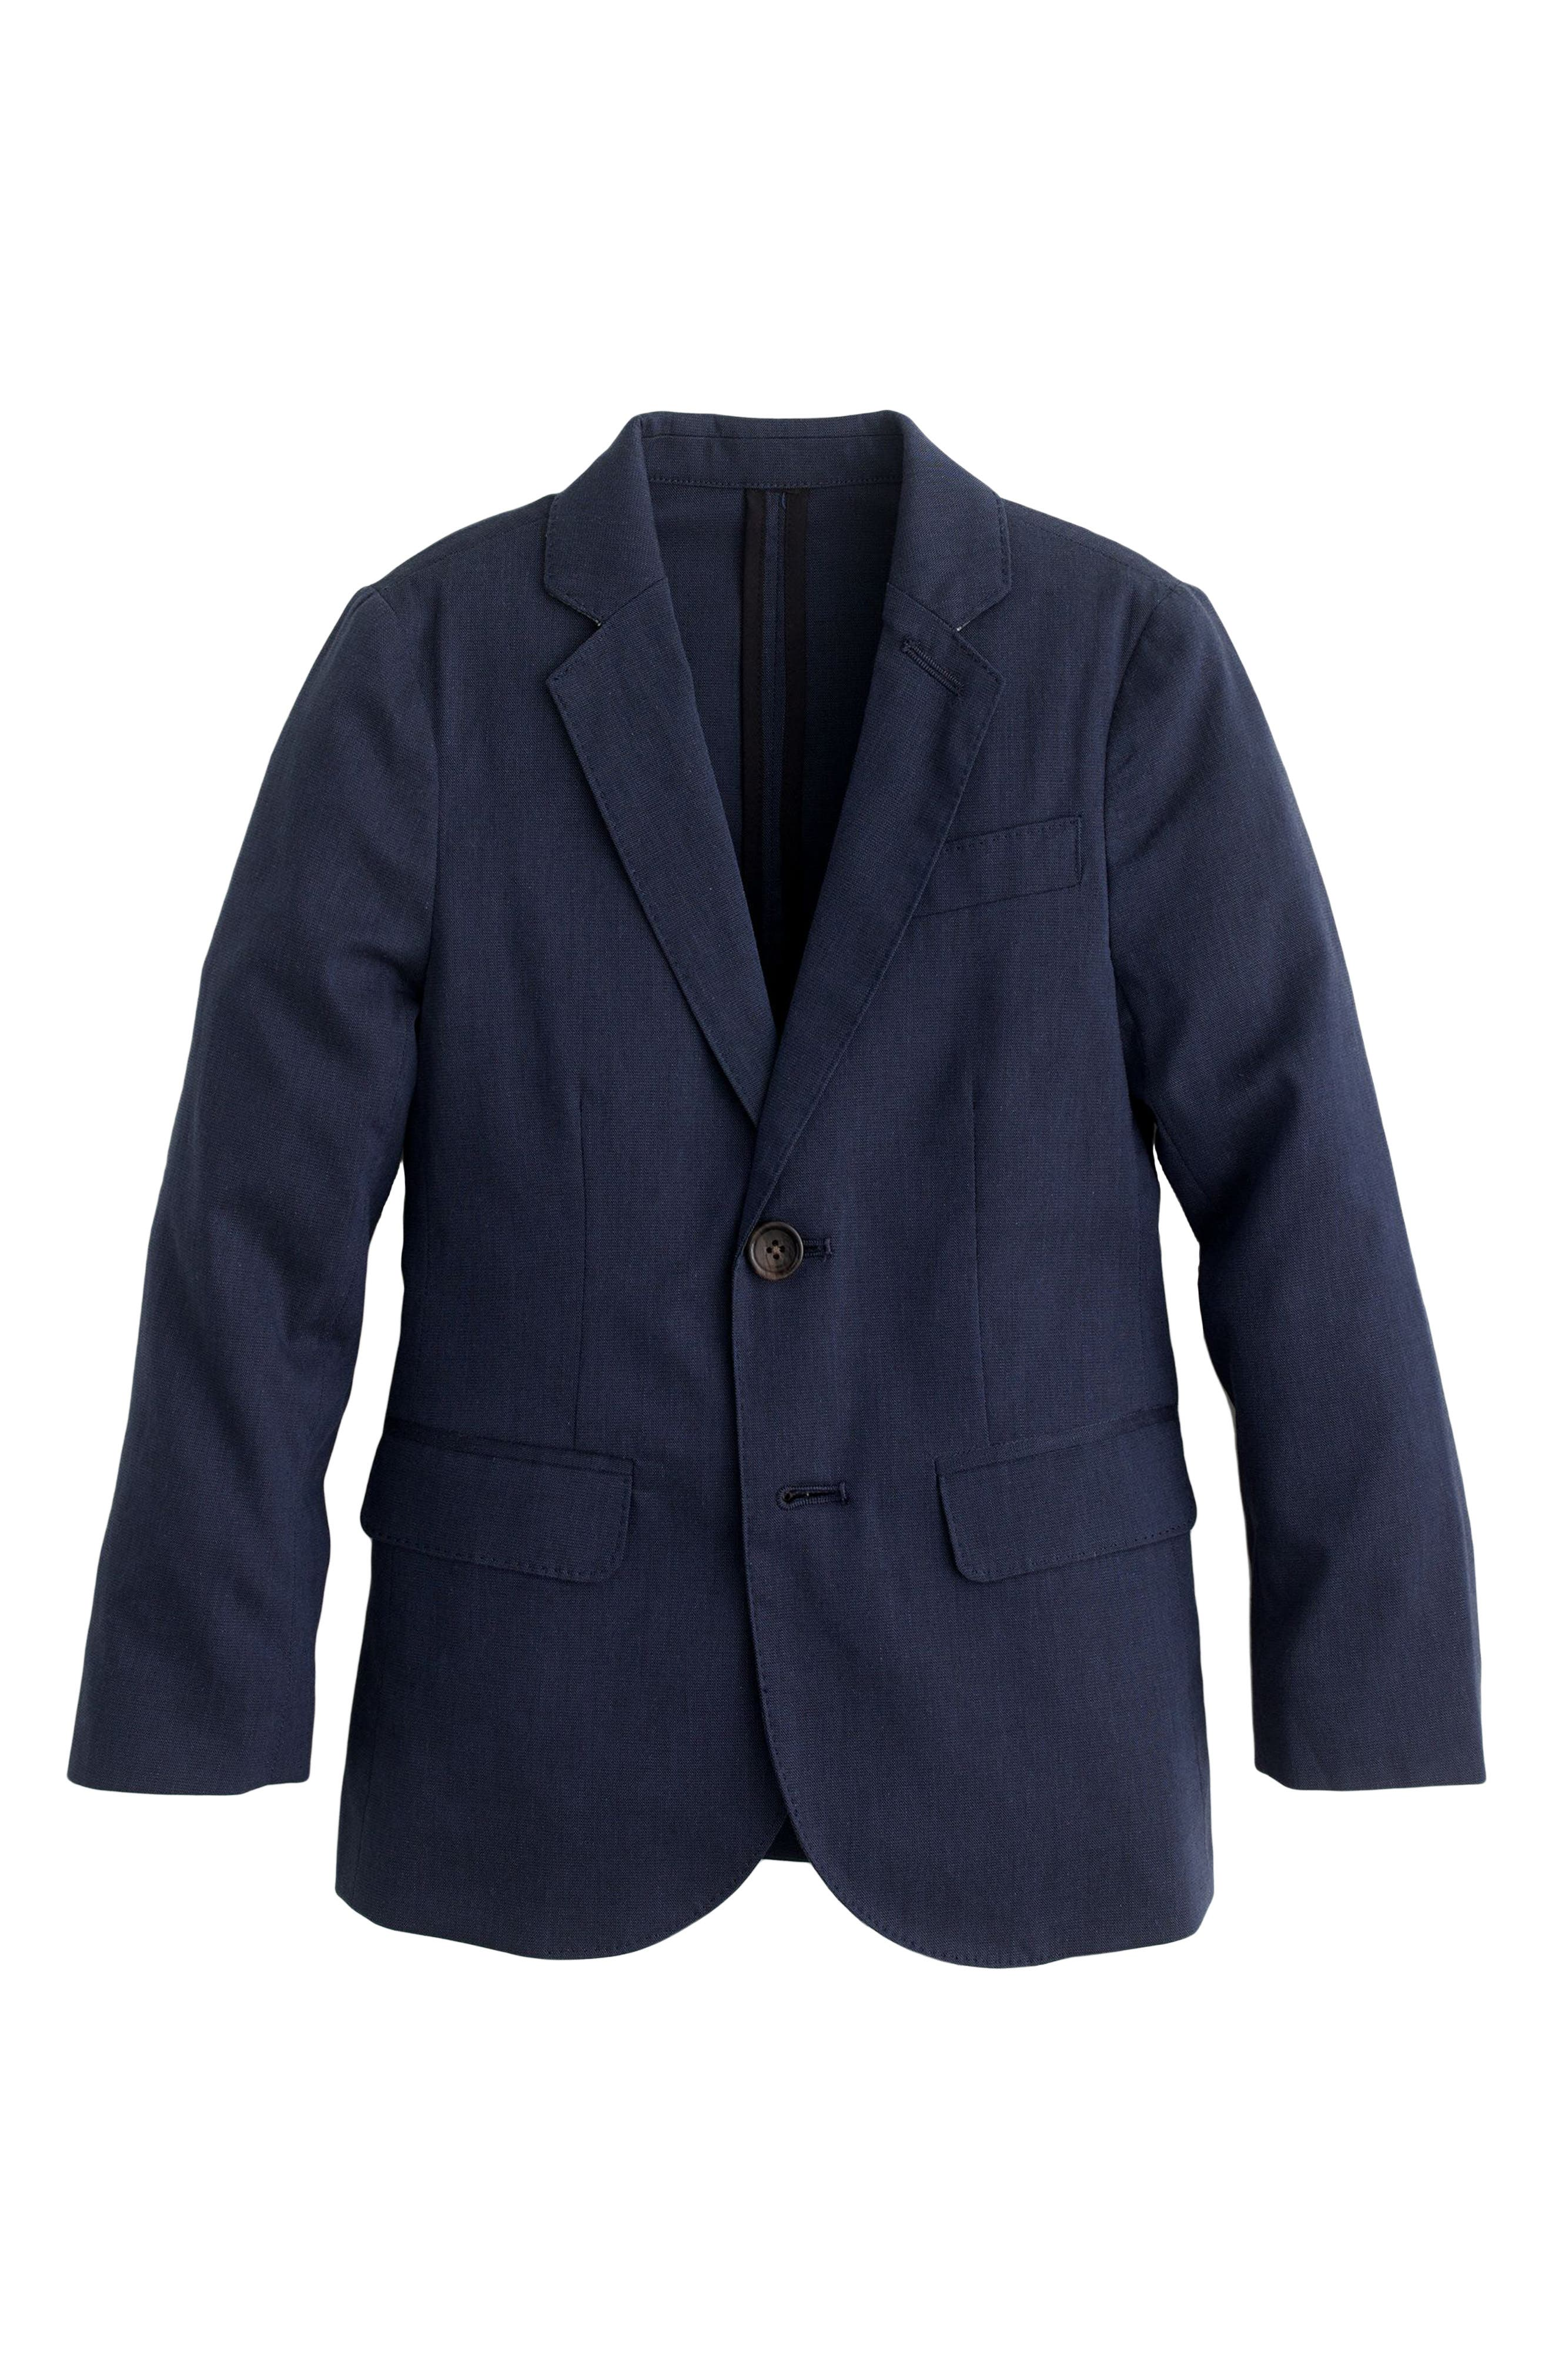 Ludlow Unstructured Suit Jacket,                         Main,                         color, Navy